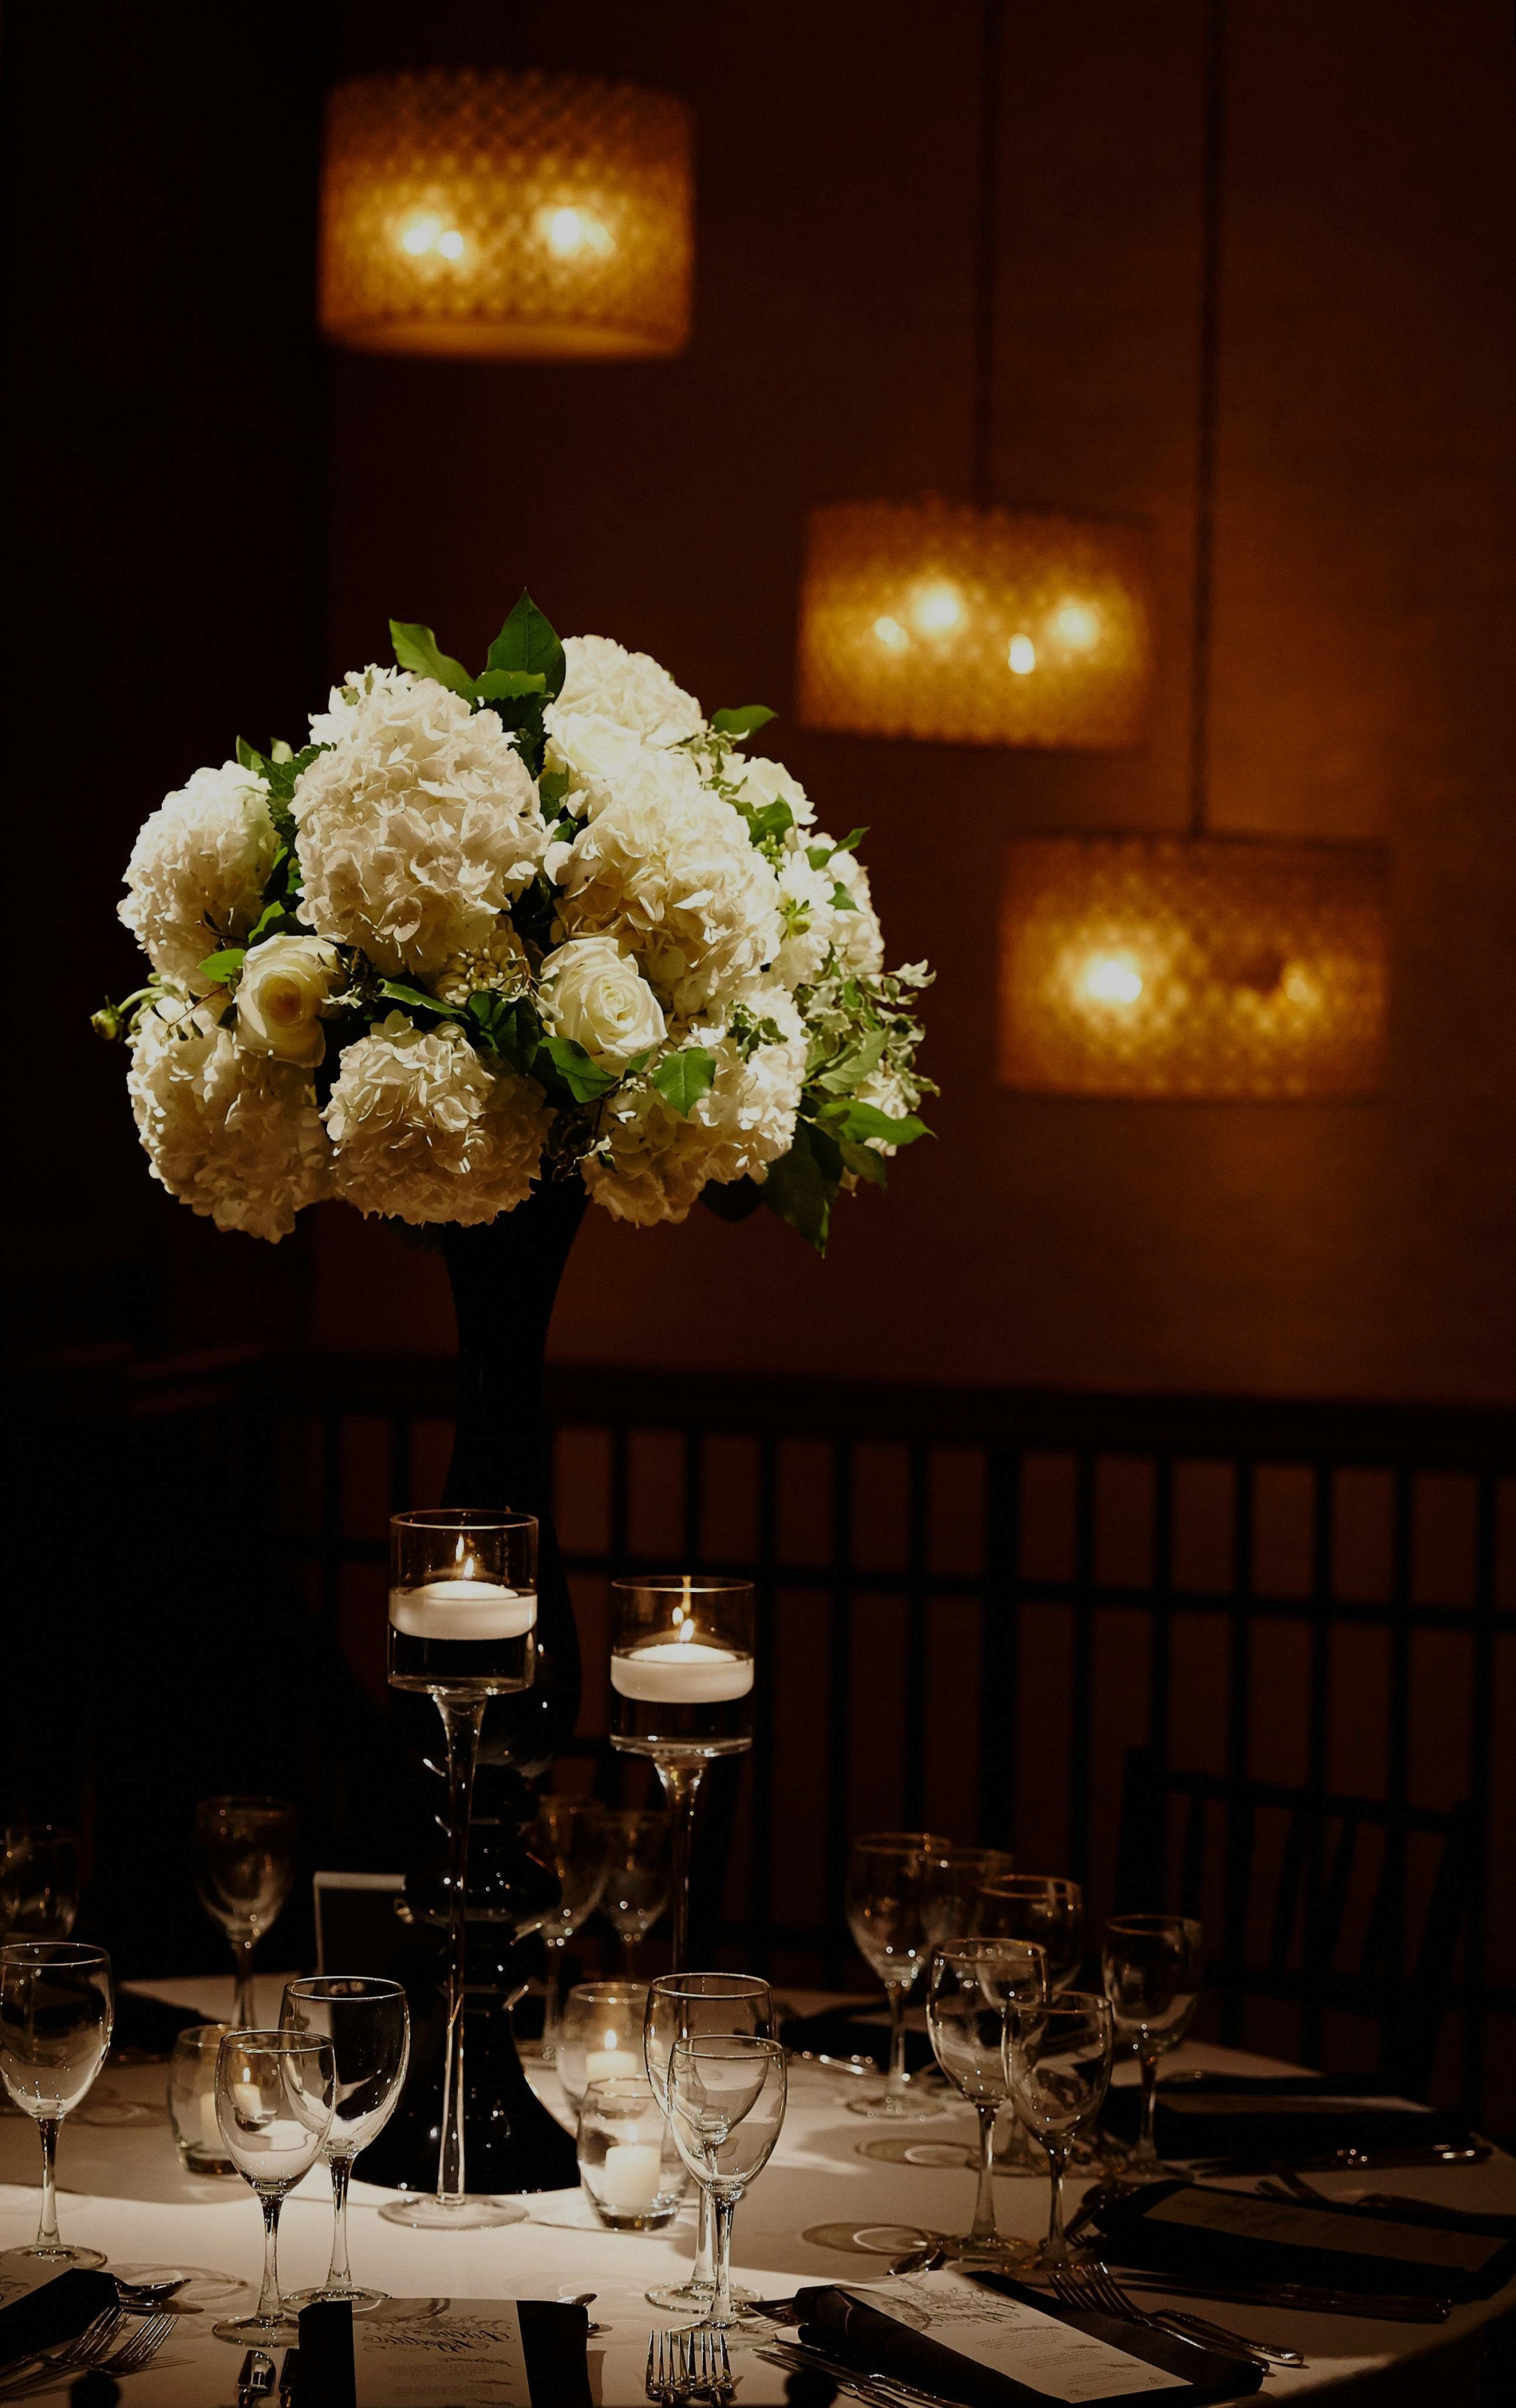 vase table centerpiece ideas of dining room table centerpiece ideas fresh home design ideas intended for dining room table centerpiece ideas centerpieces for dining room tables fresh il fullxfull h vases black